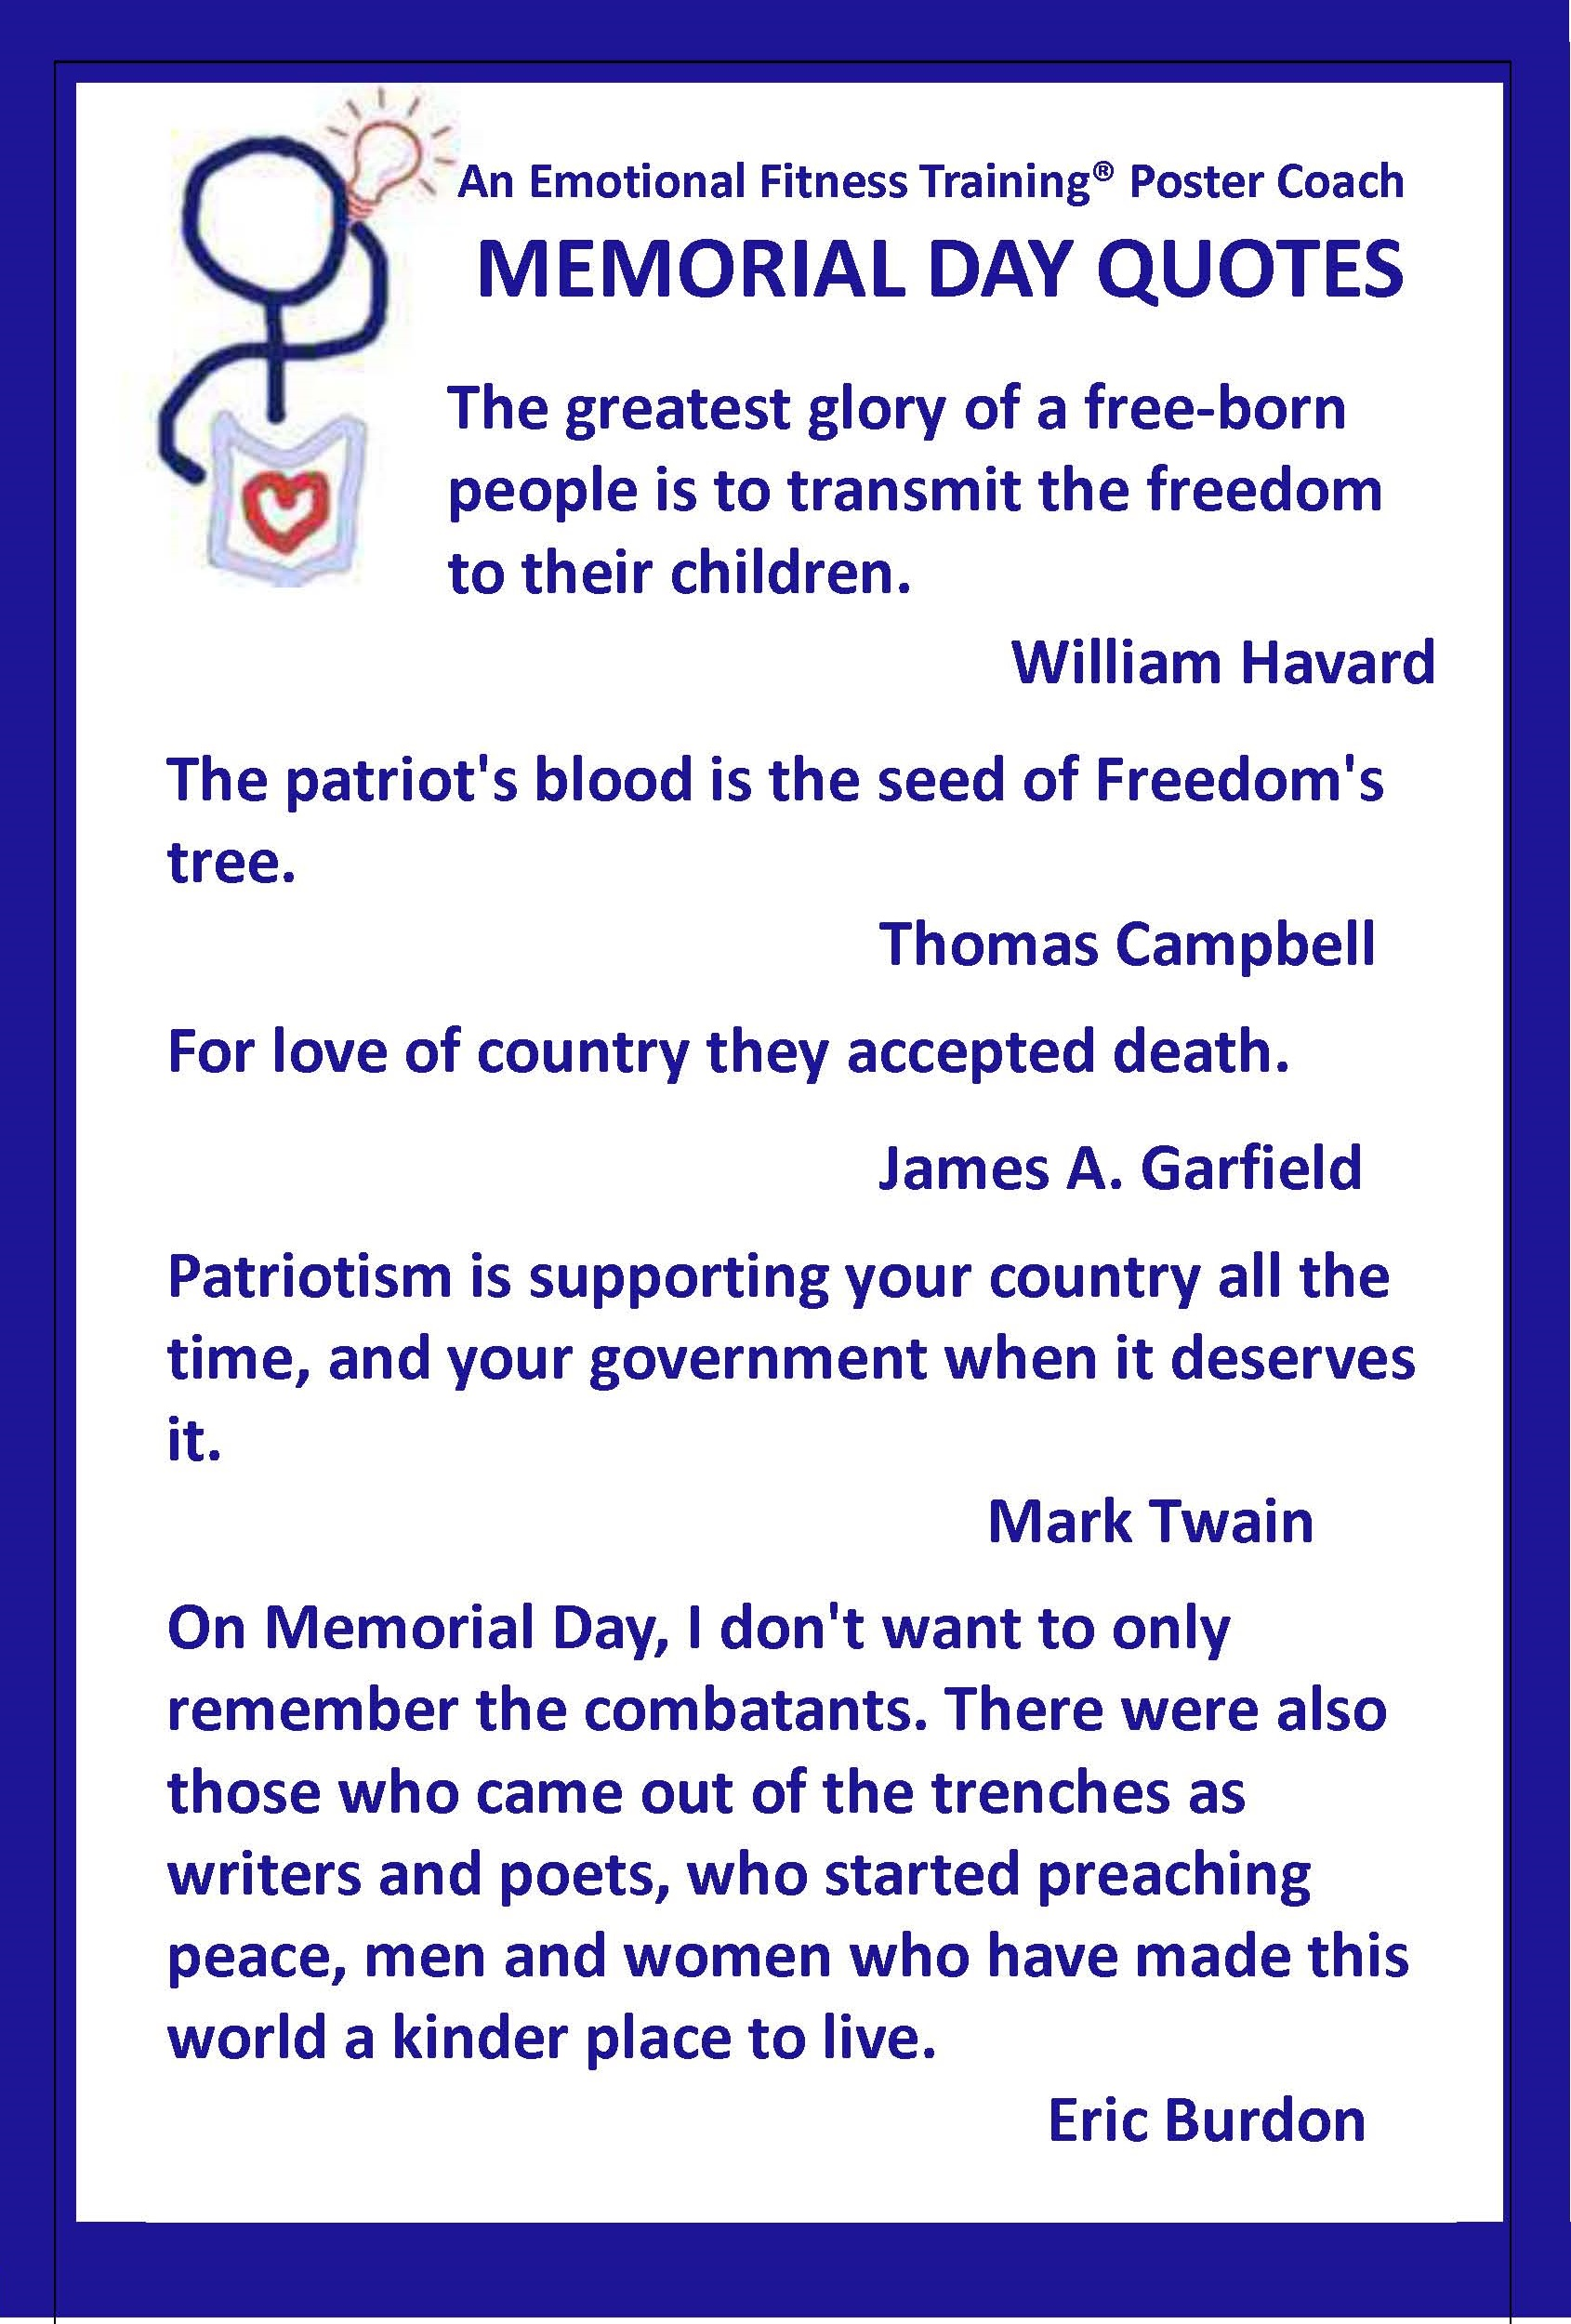 Memorial Day quote #1